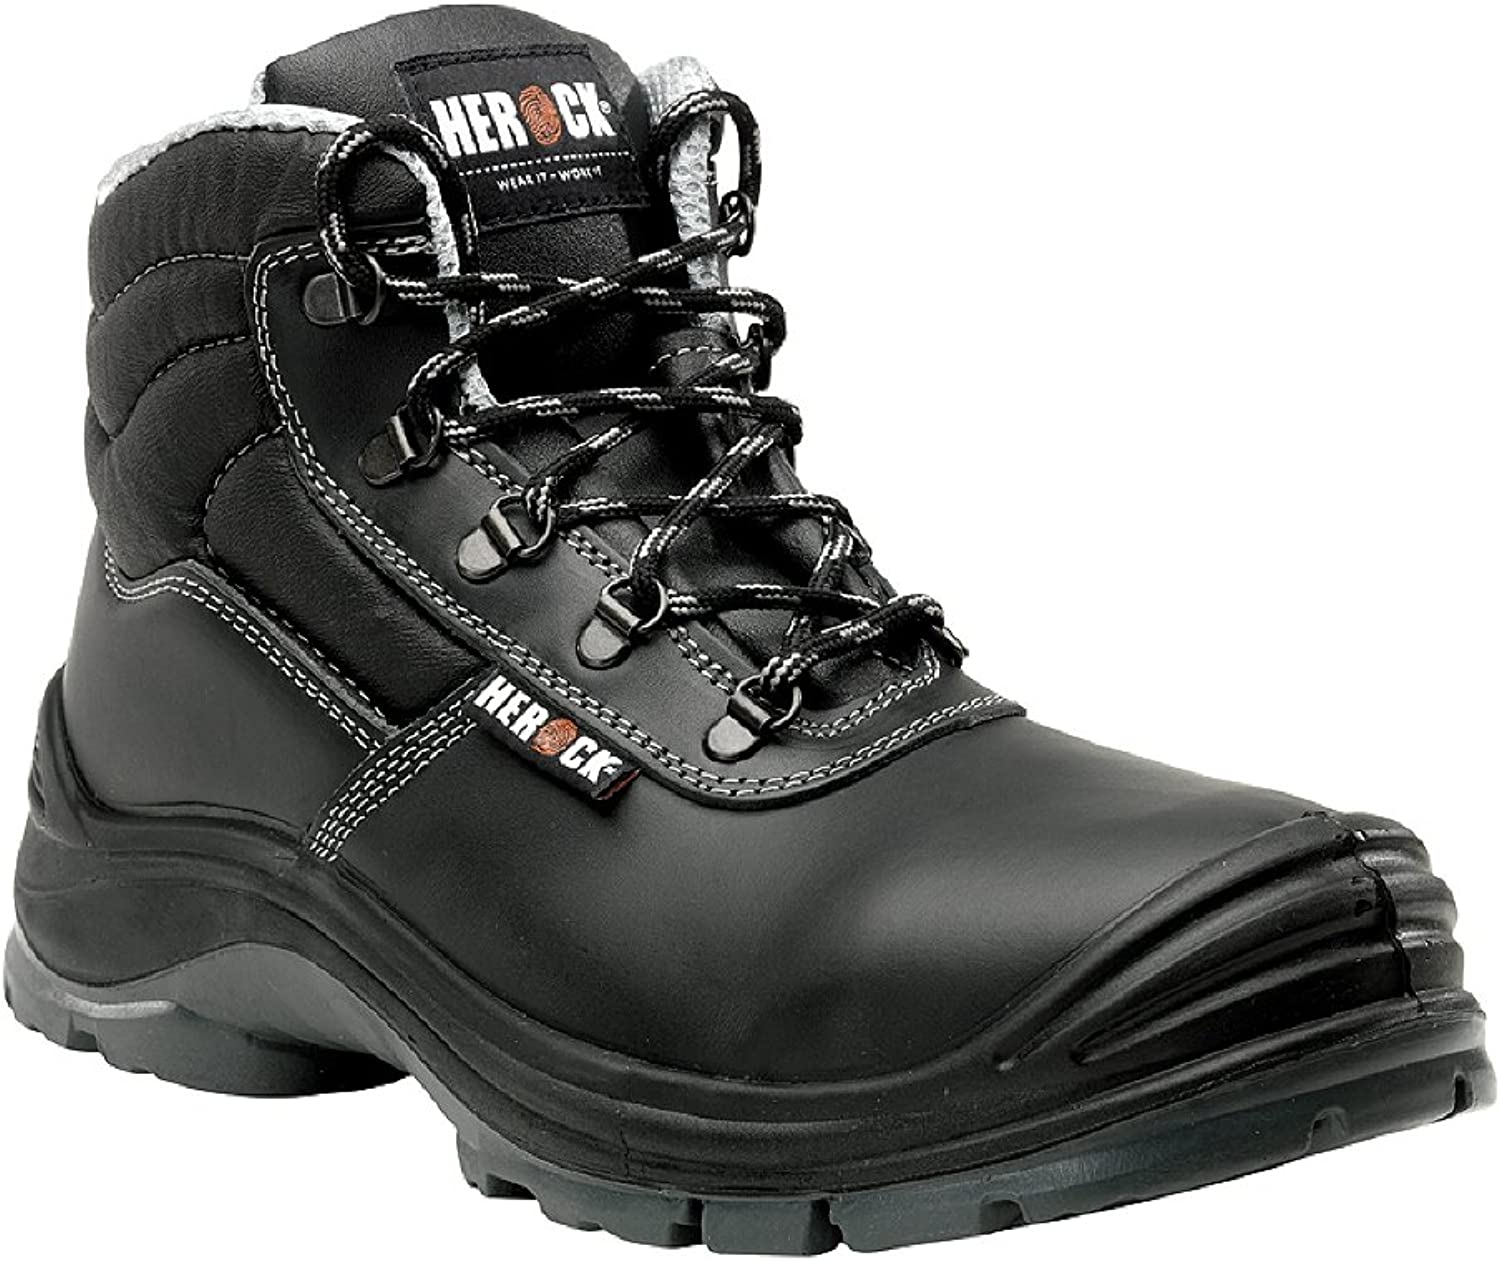 Constructor High Compo S3 shoes - Safety shoes Rising Soul Rebel Footwear